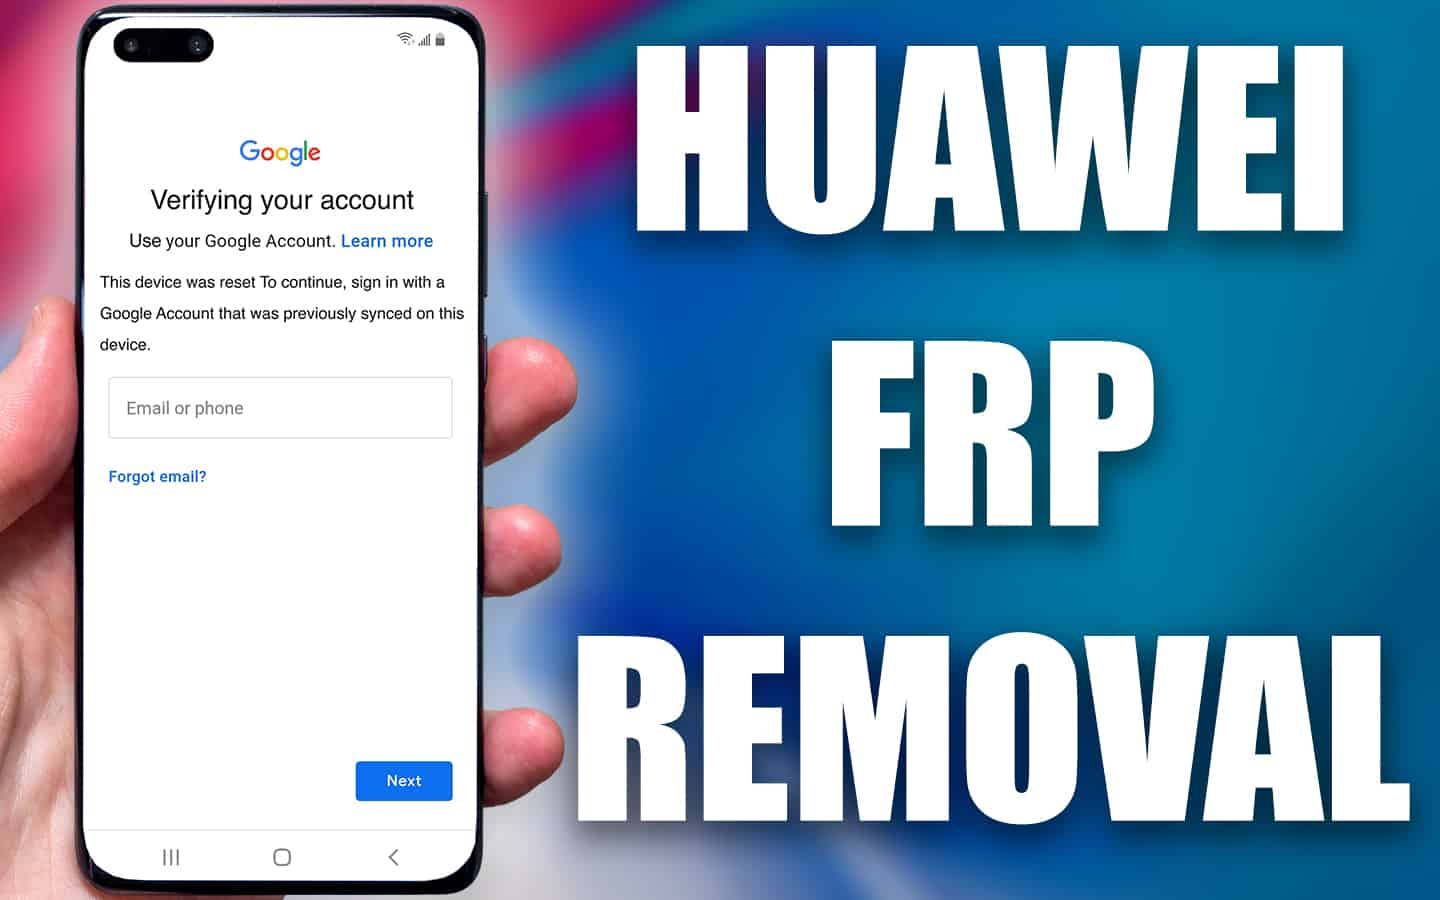 huawei frp removal service